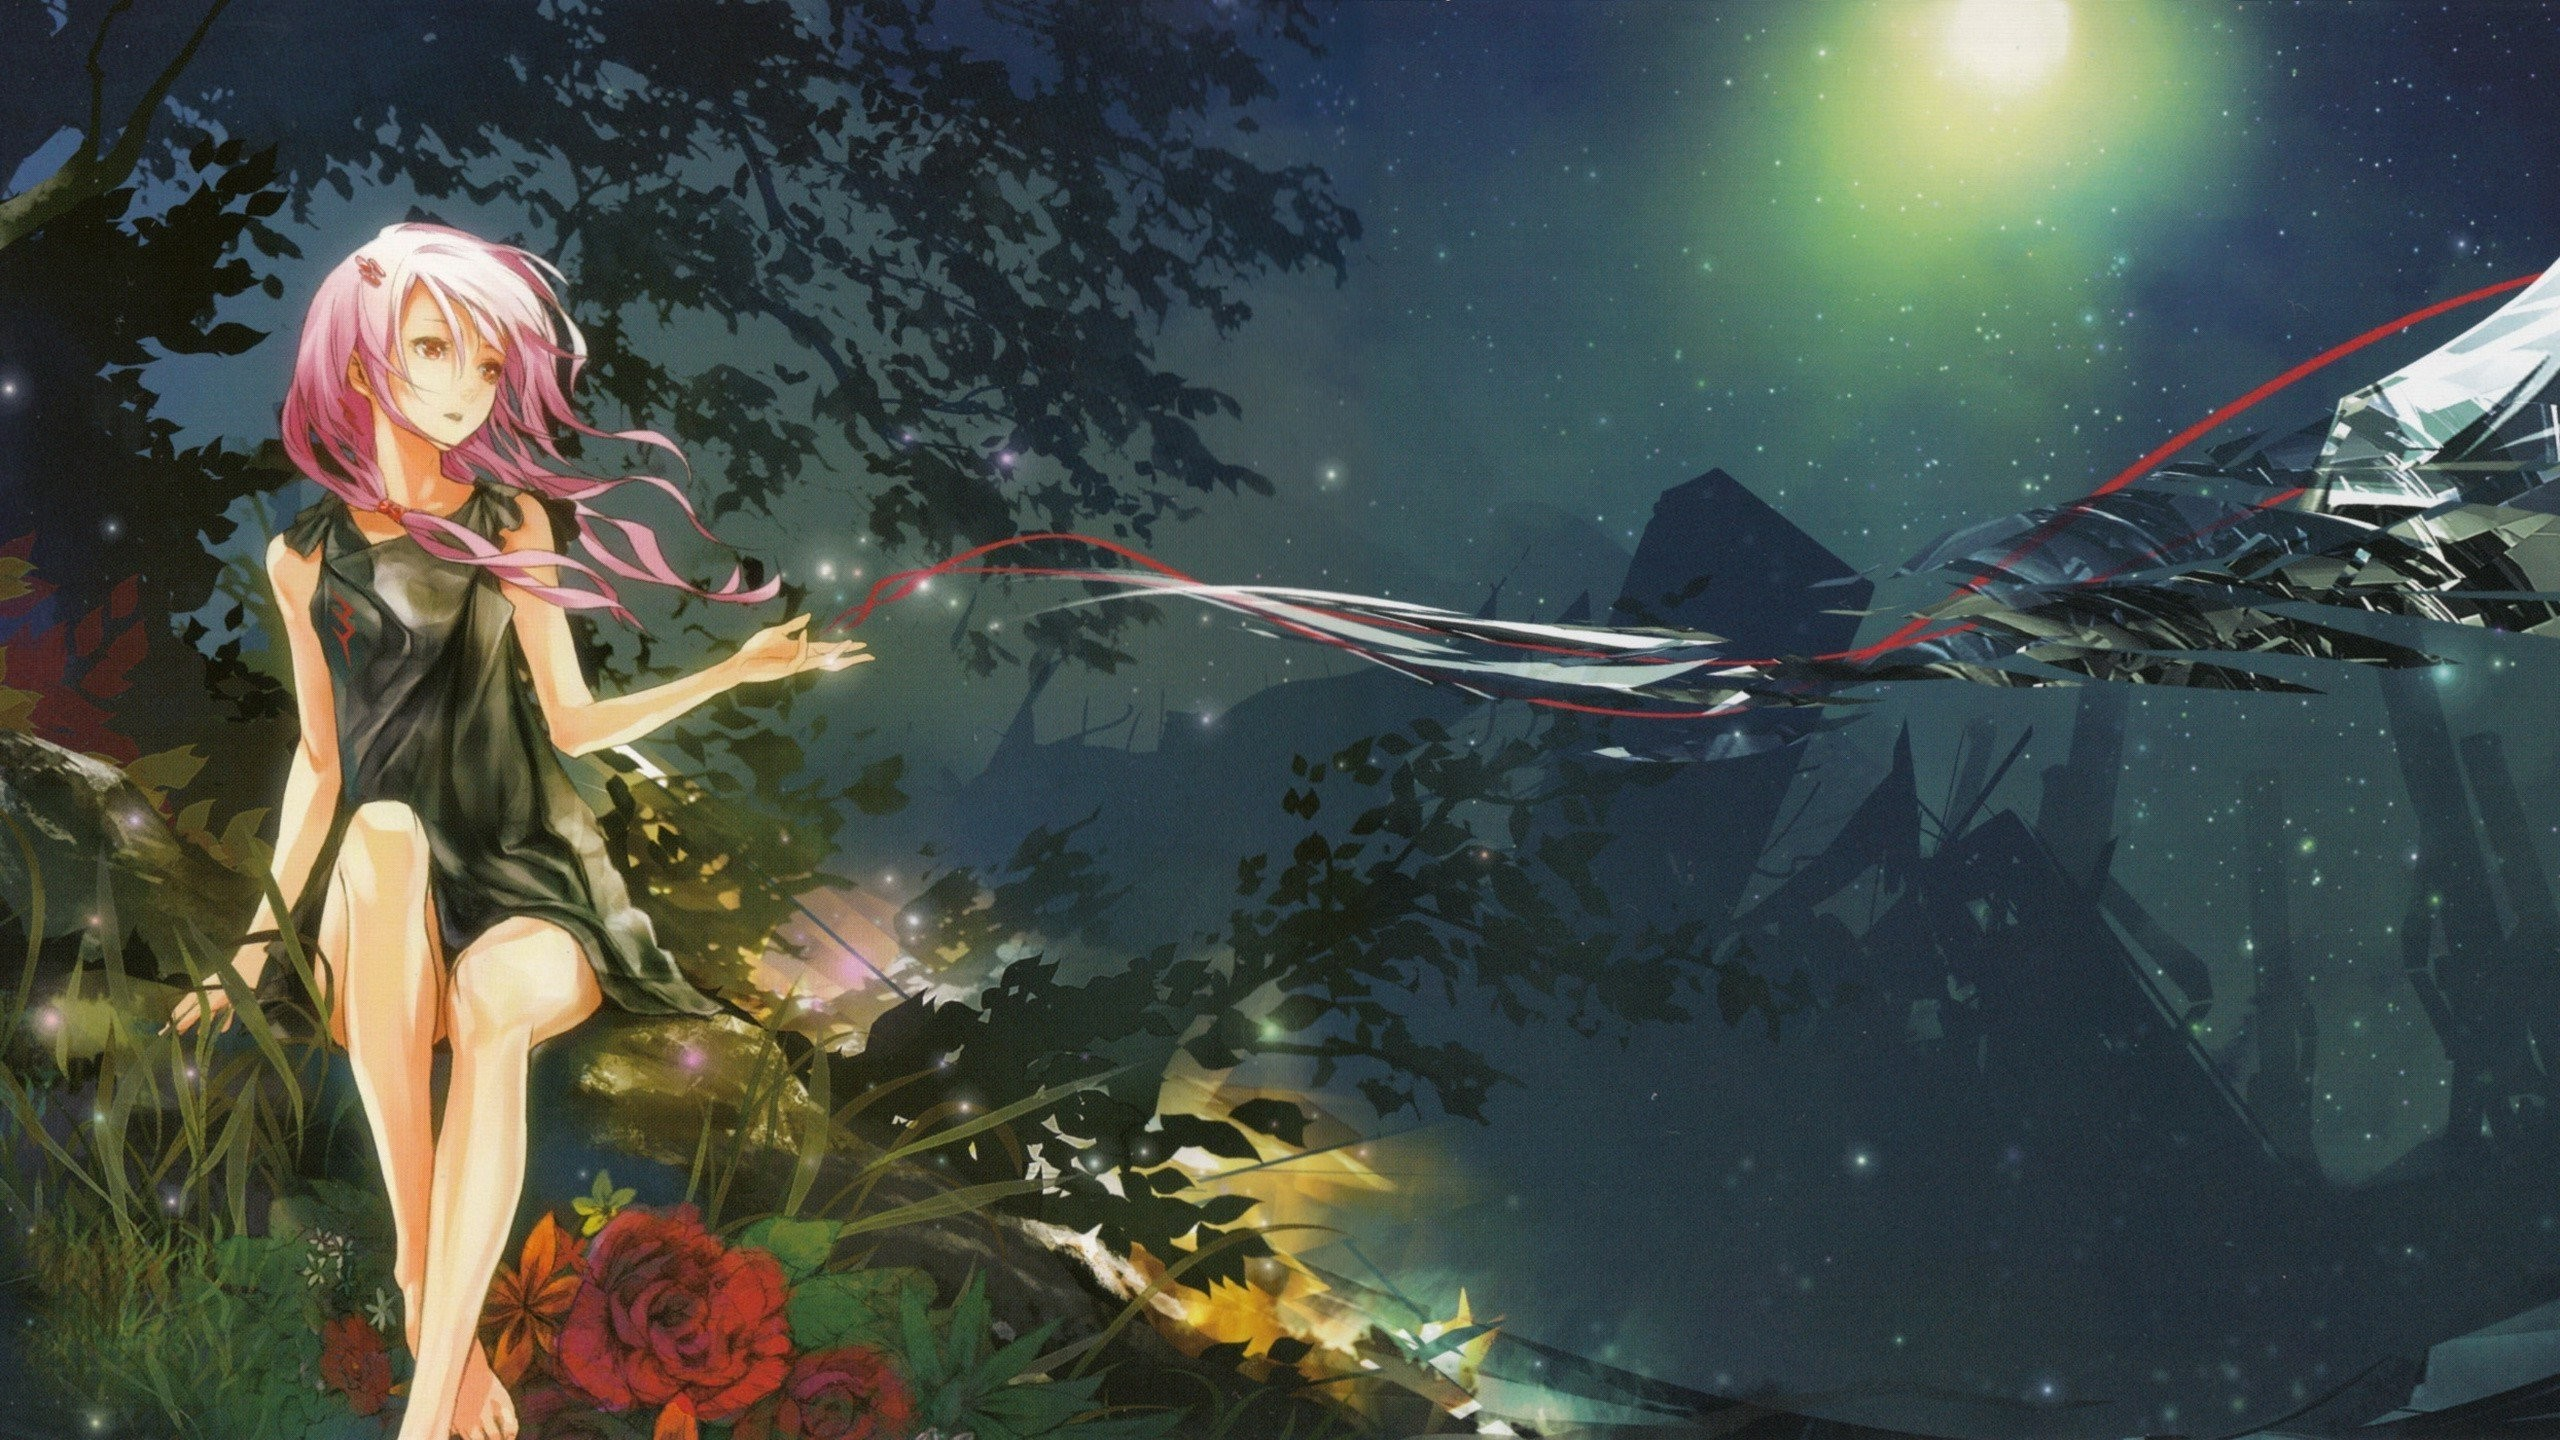 2560x1440 Wallpapers-fairy-woman-forest